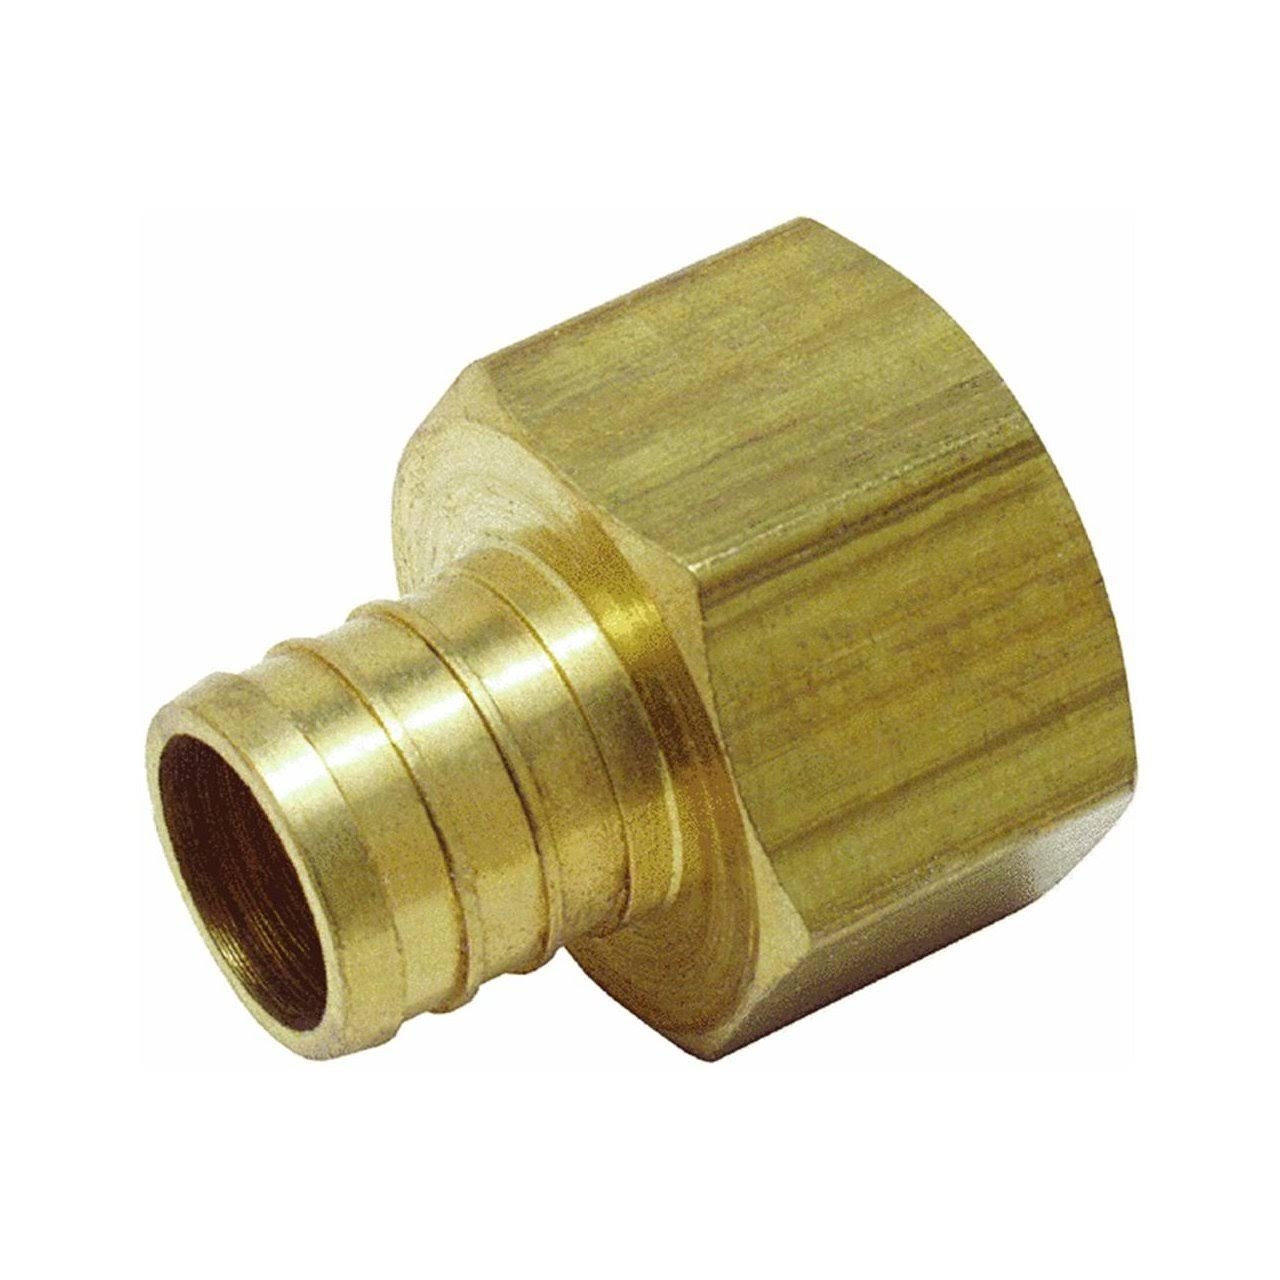 "Sharkbite LFWP13B-0808PB Female Pipe Thread Adapter - 1/2""x1/2"", 5ct"